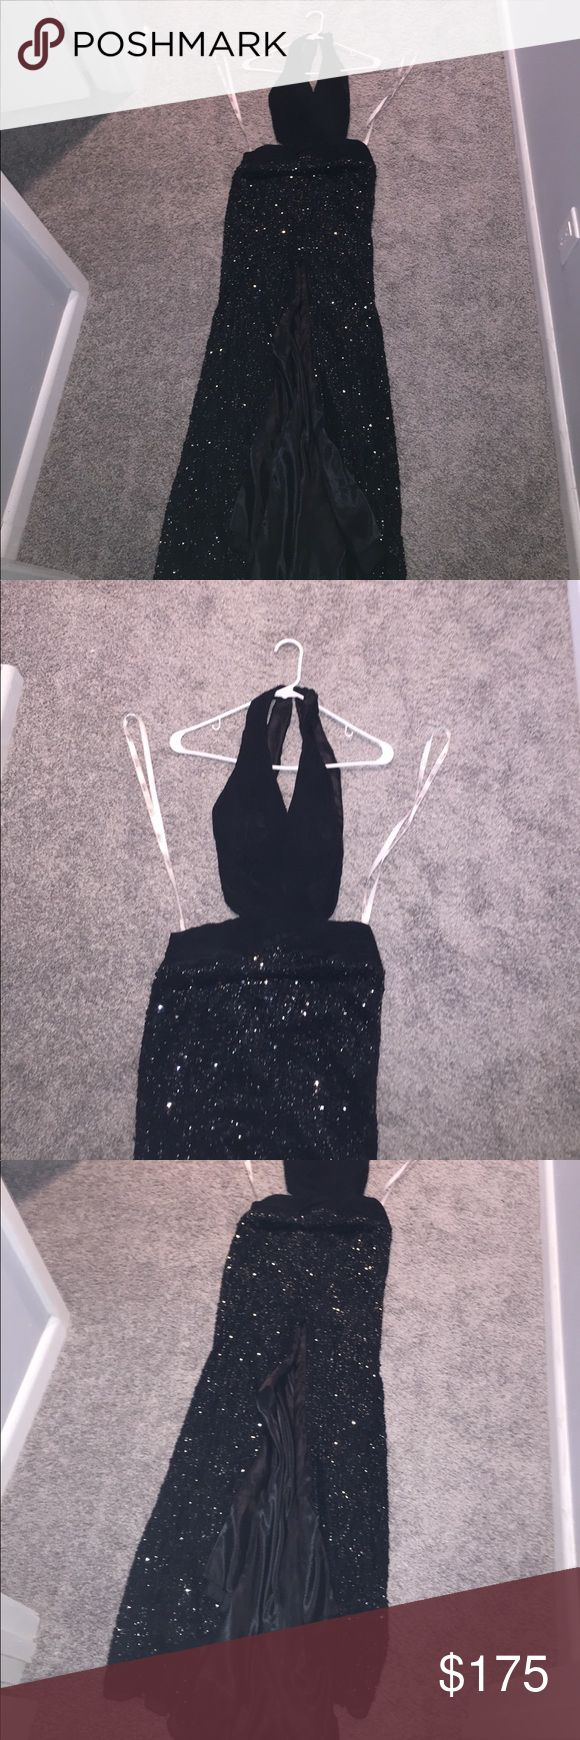 [Tony Bowls PARIS] Gown Paris Tony Bowls - silk black gown with beading all down the skirt part. High slit up the middle! Halter style top. Perfect for from or a fancy evening outing ! Tony Bowls Dresses Backless